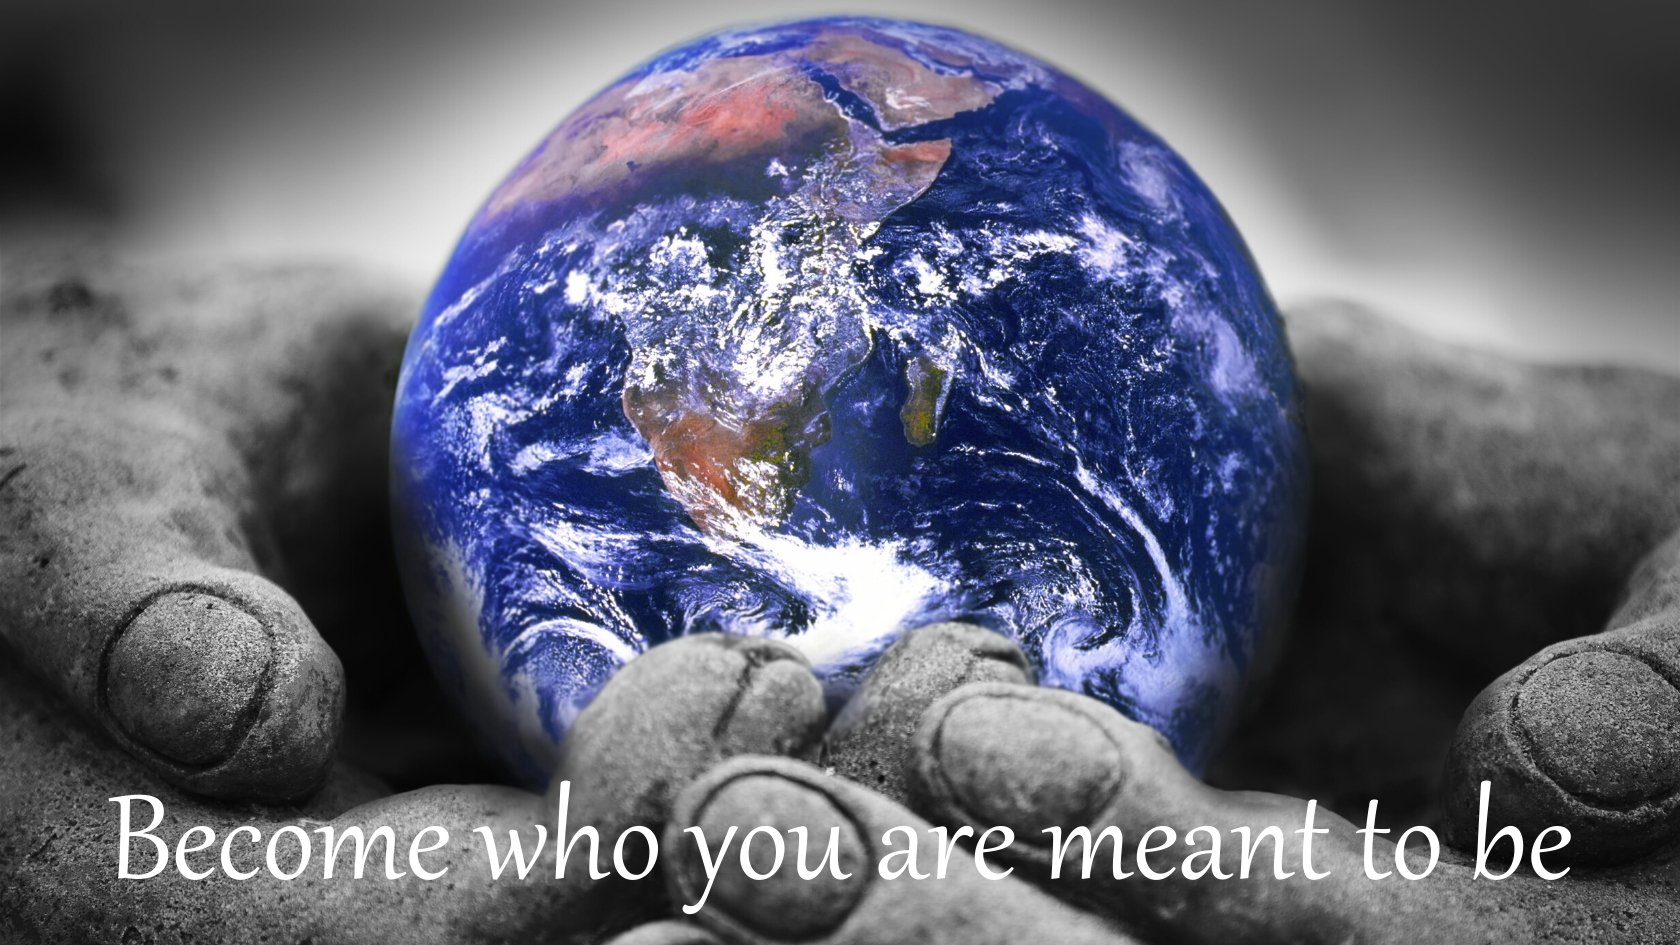 Earth held in a pair of hands - Become who you are meant to be